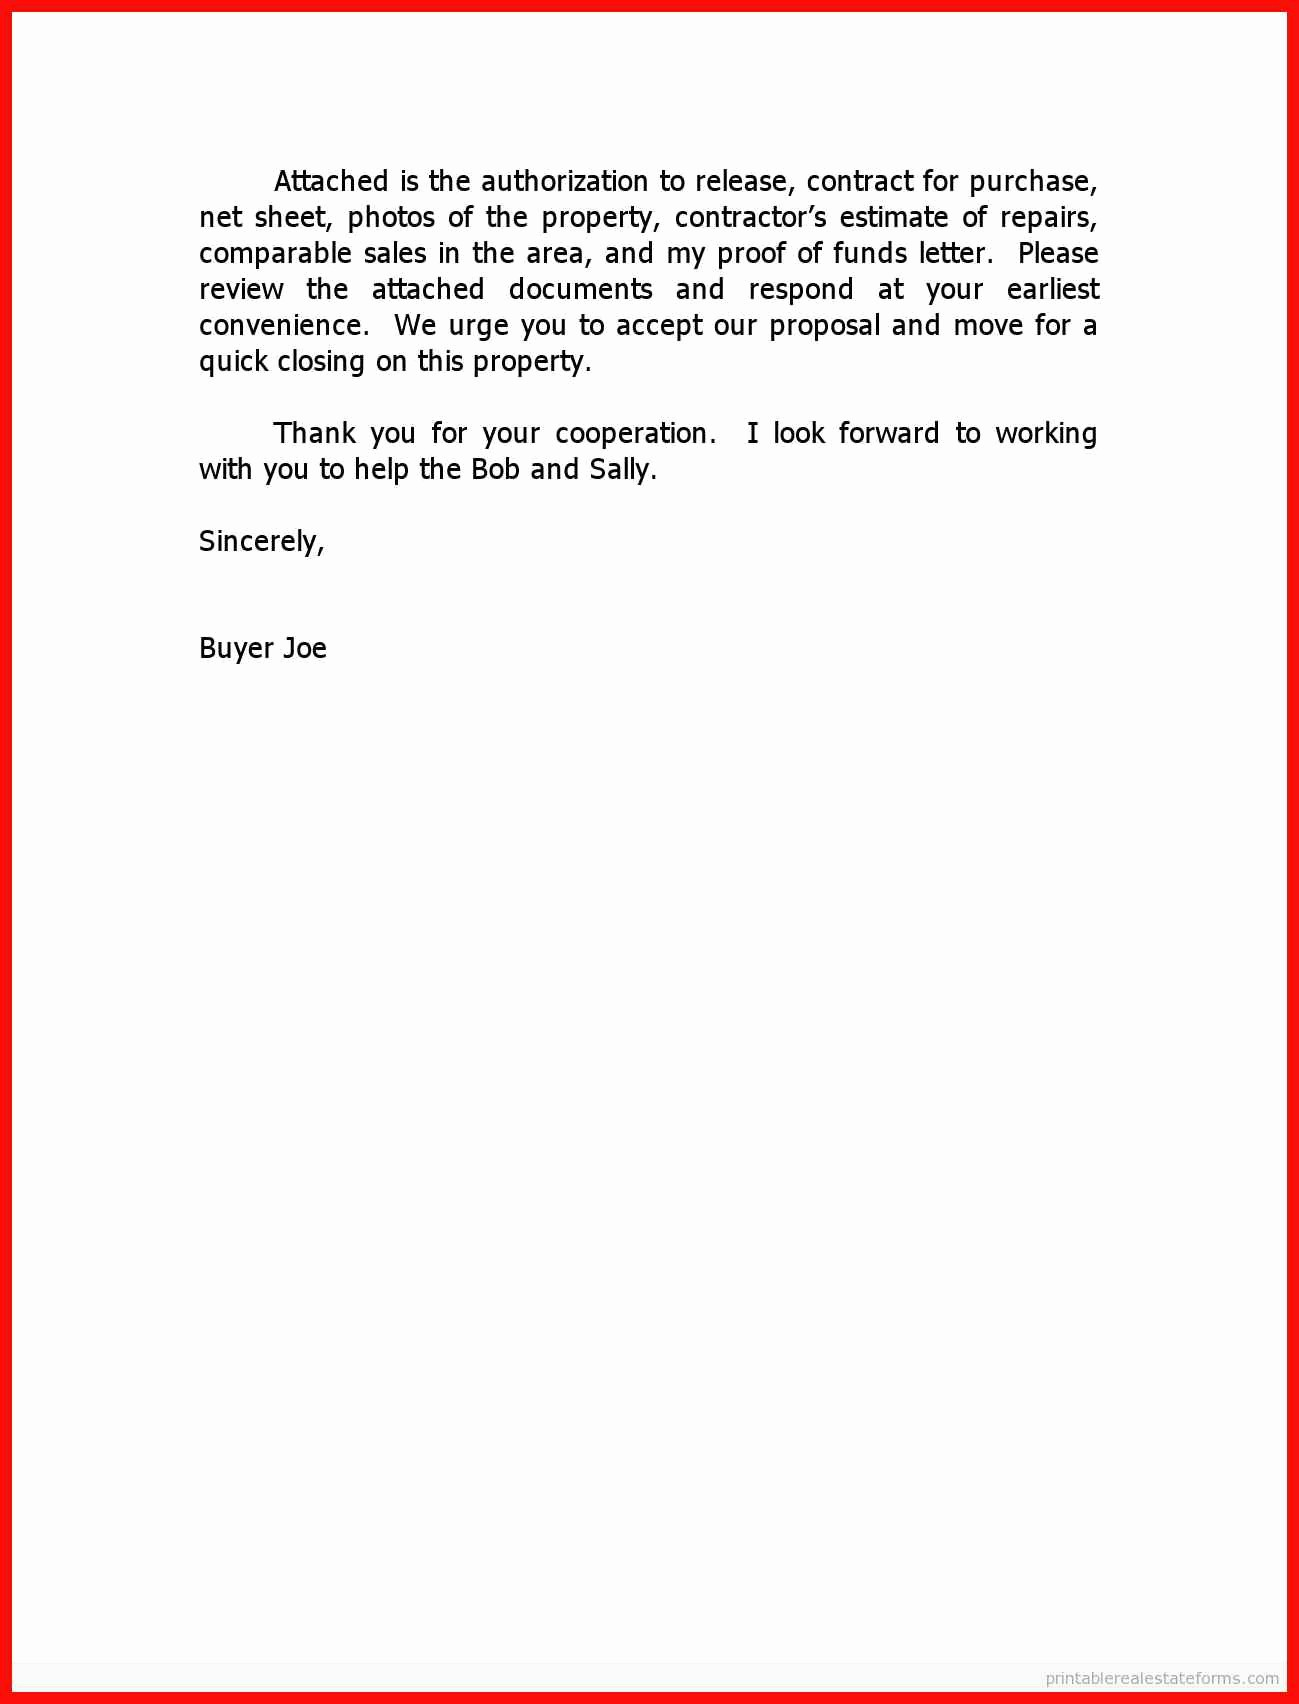 Short and Simple Cover Letters Inspirational Great Short Cover Letters